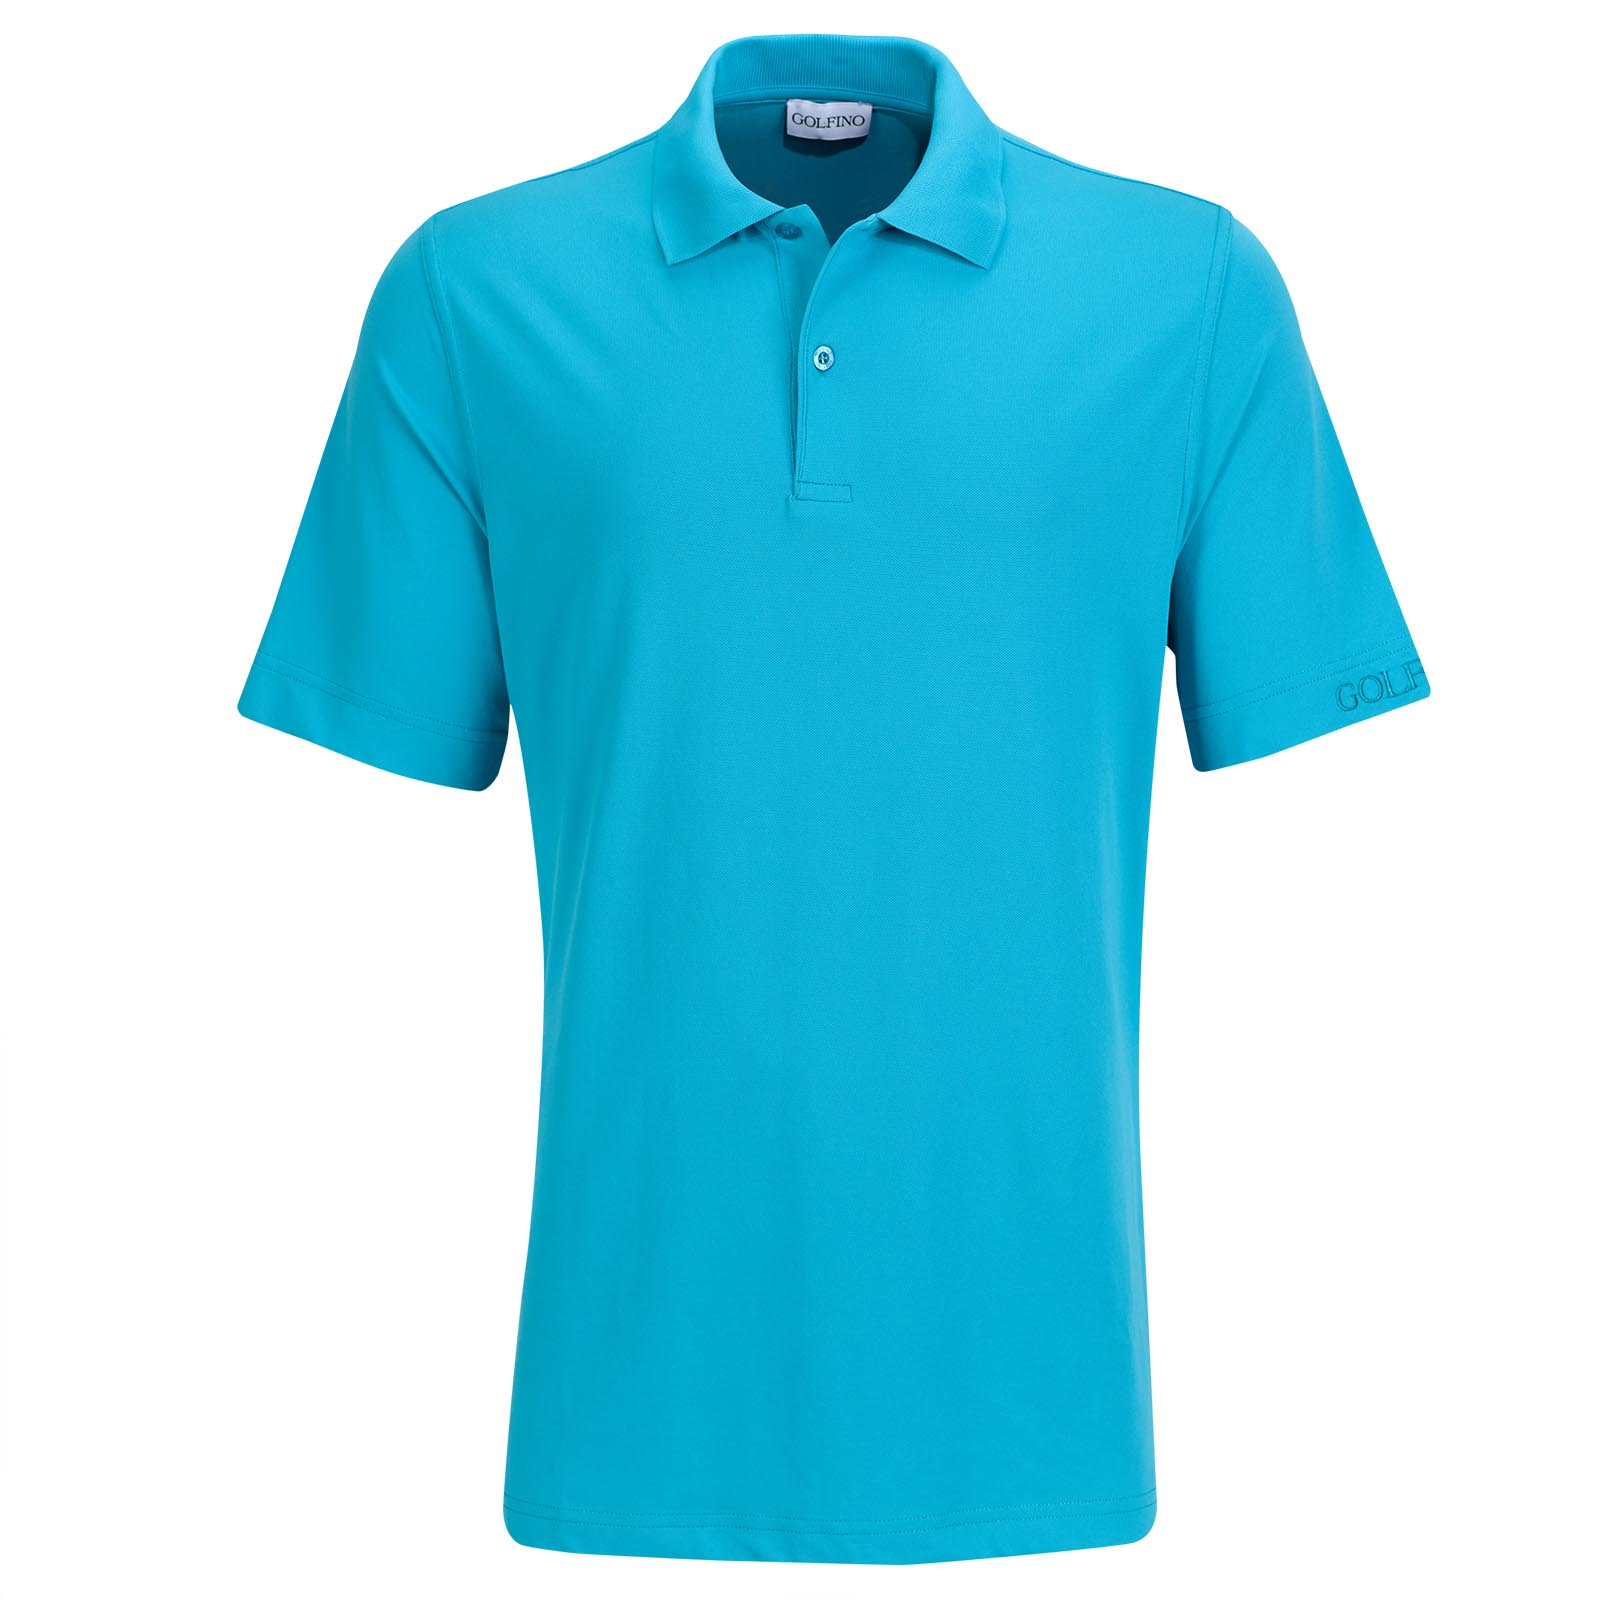 Men's functional dry comfort golf polo in regular fit